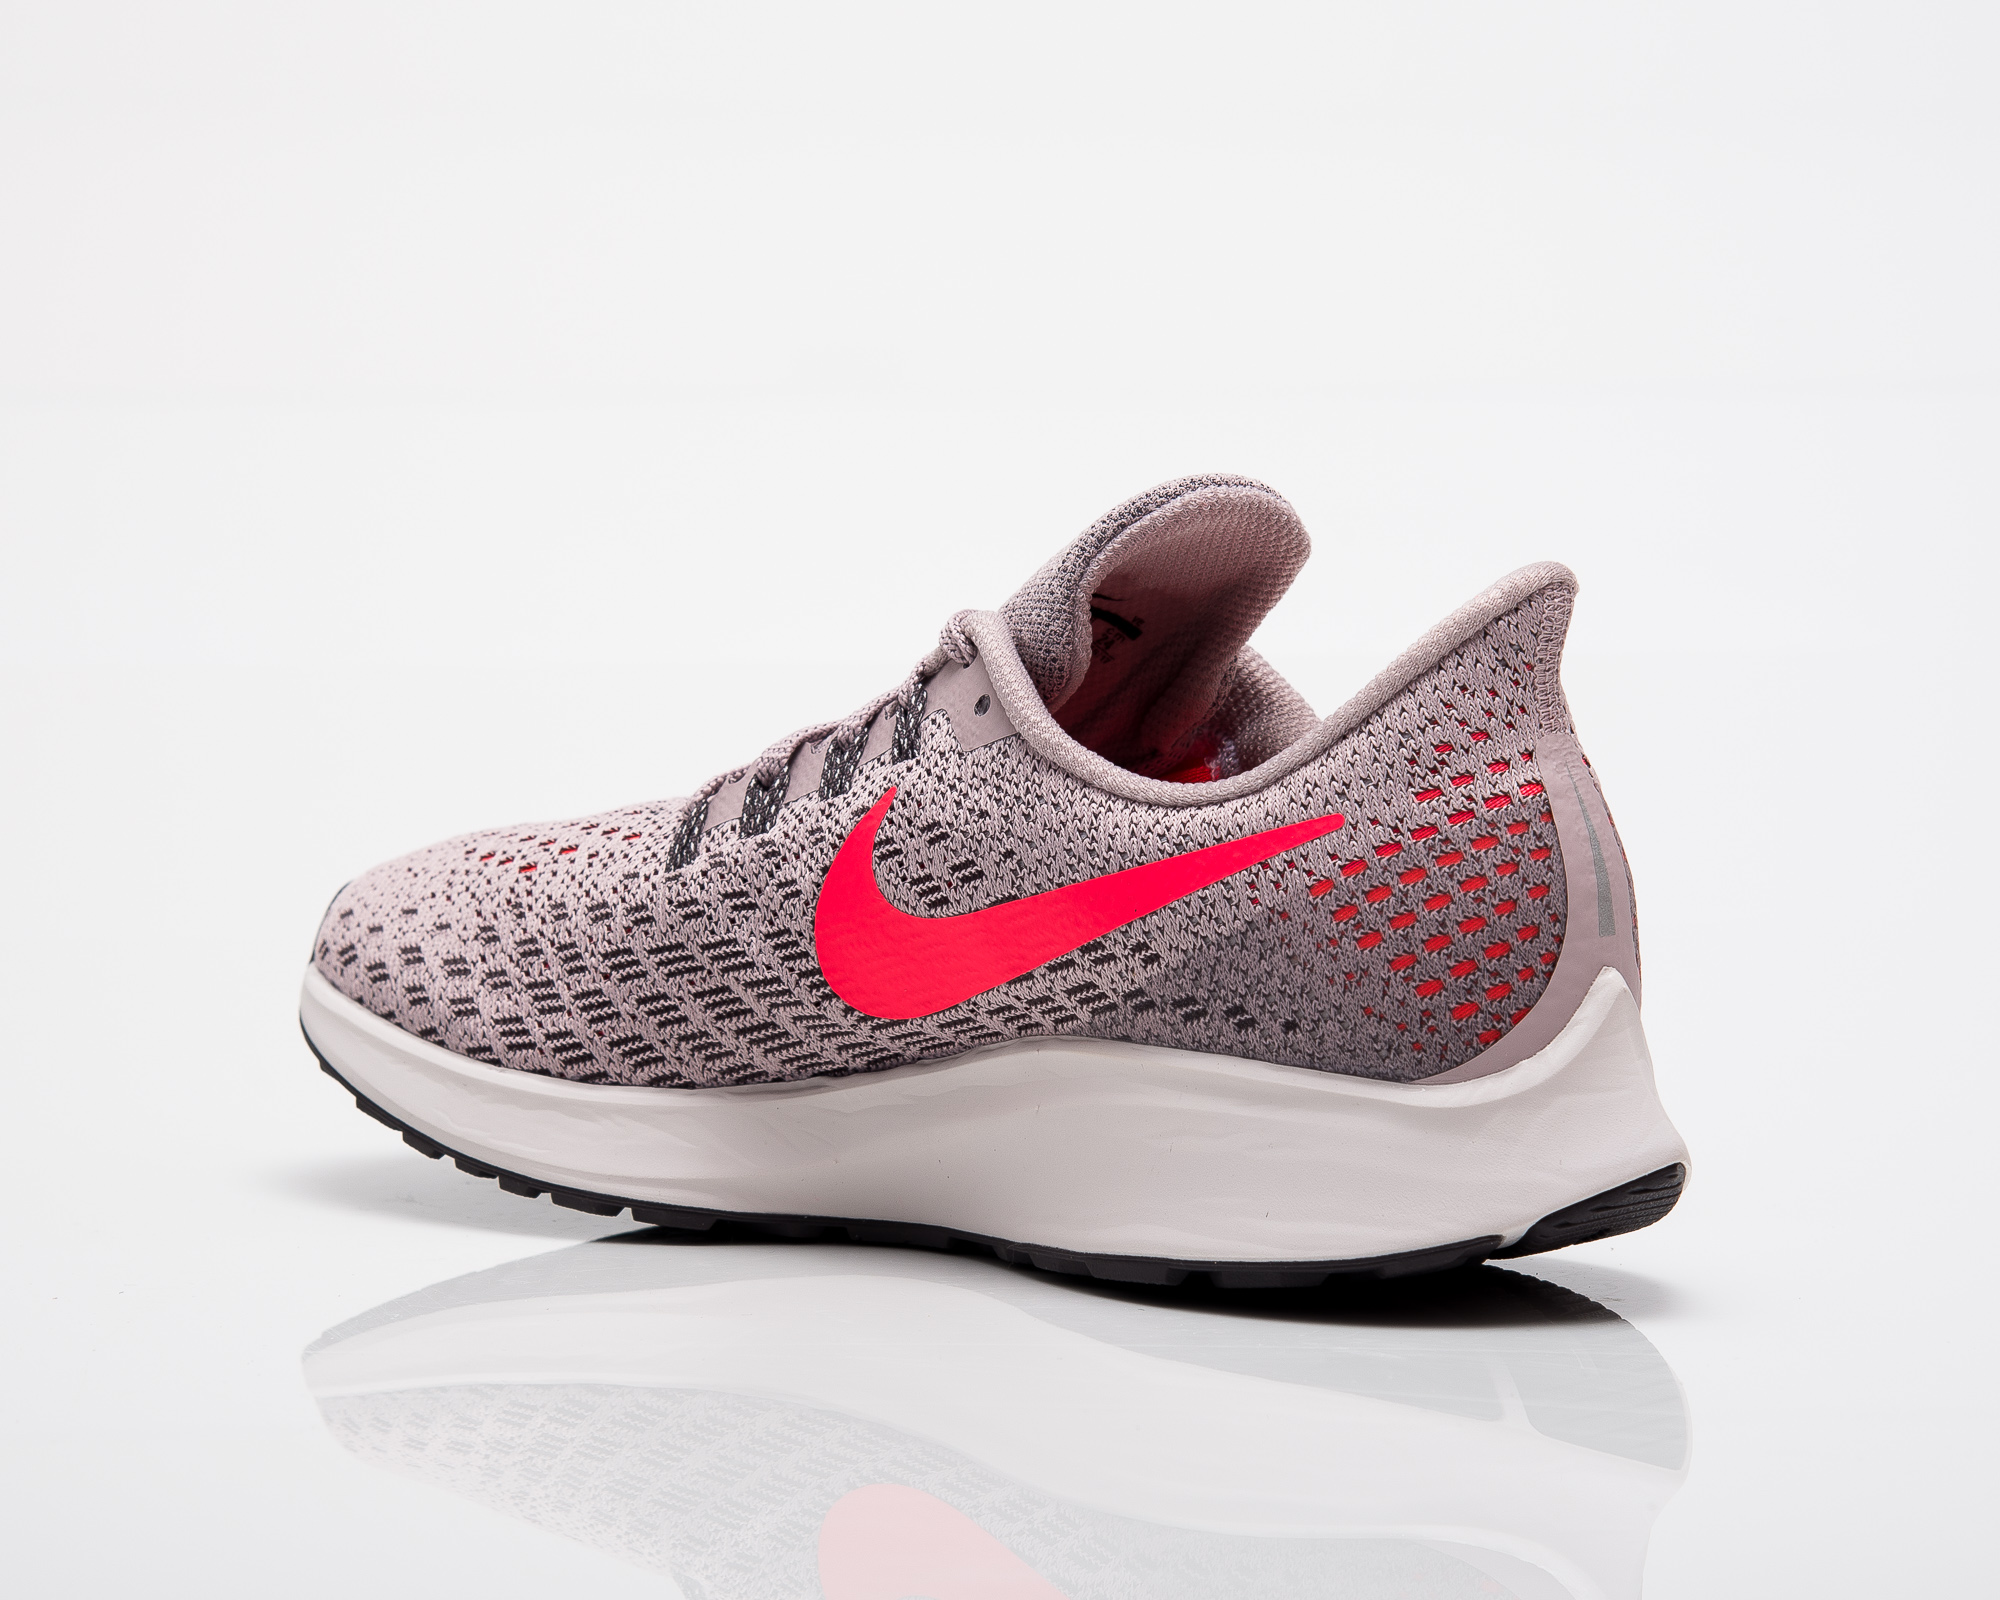 Nike Wmns Air Zoom Pegasus 35 - Shoes Running - Sporting goods  ccf6974ff7fb4